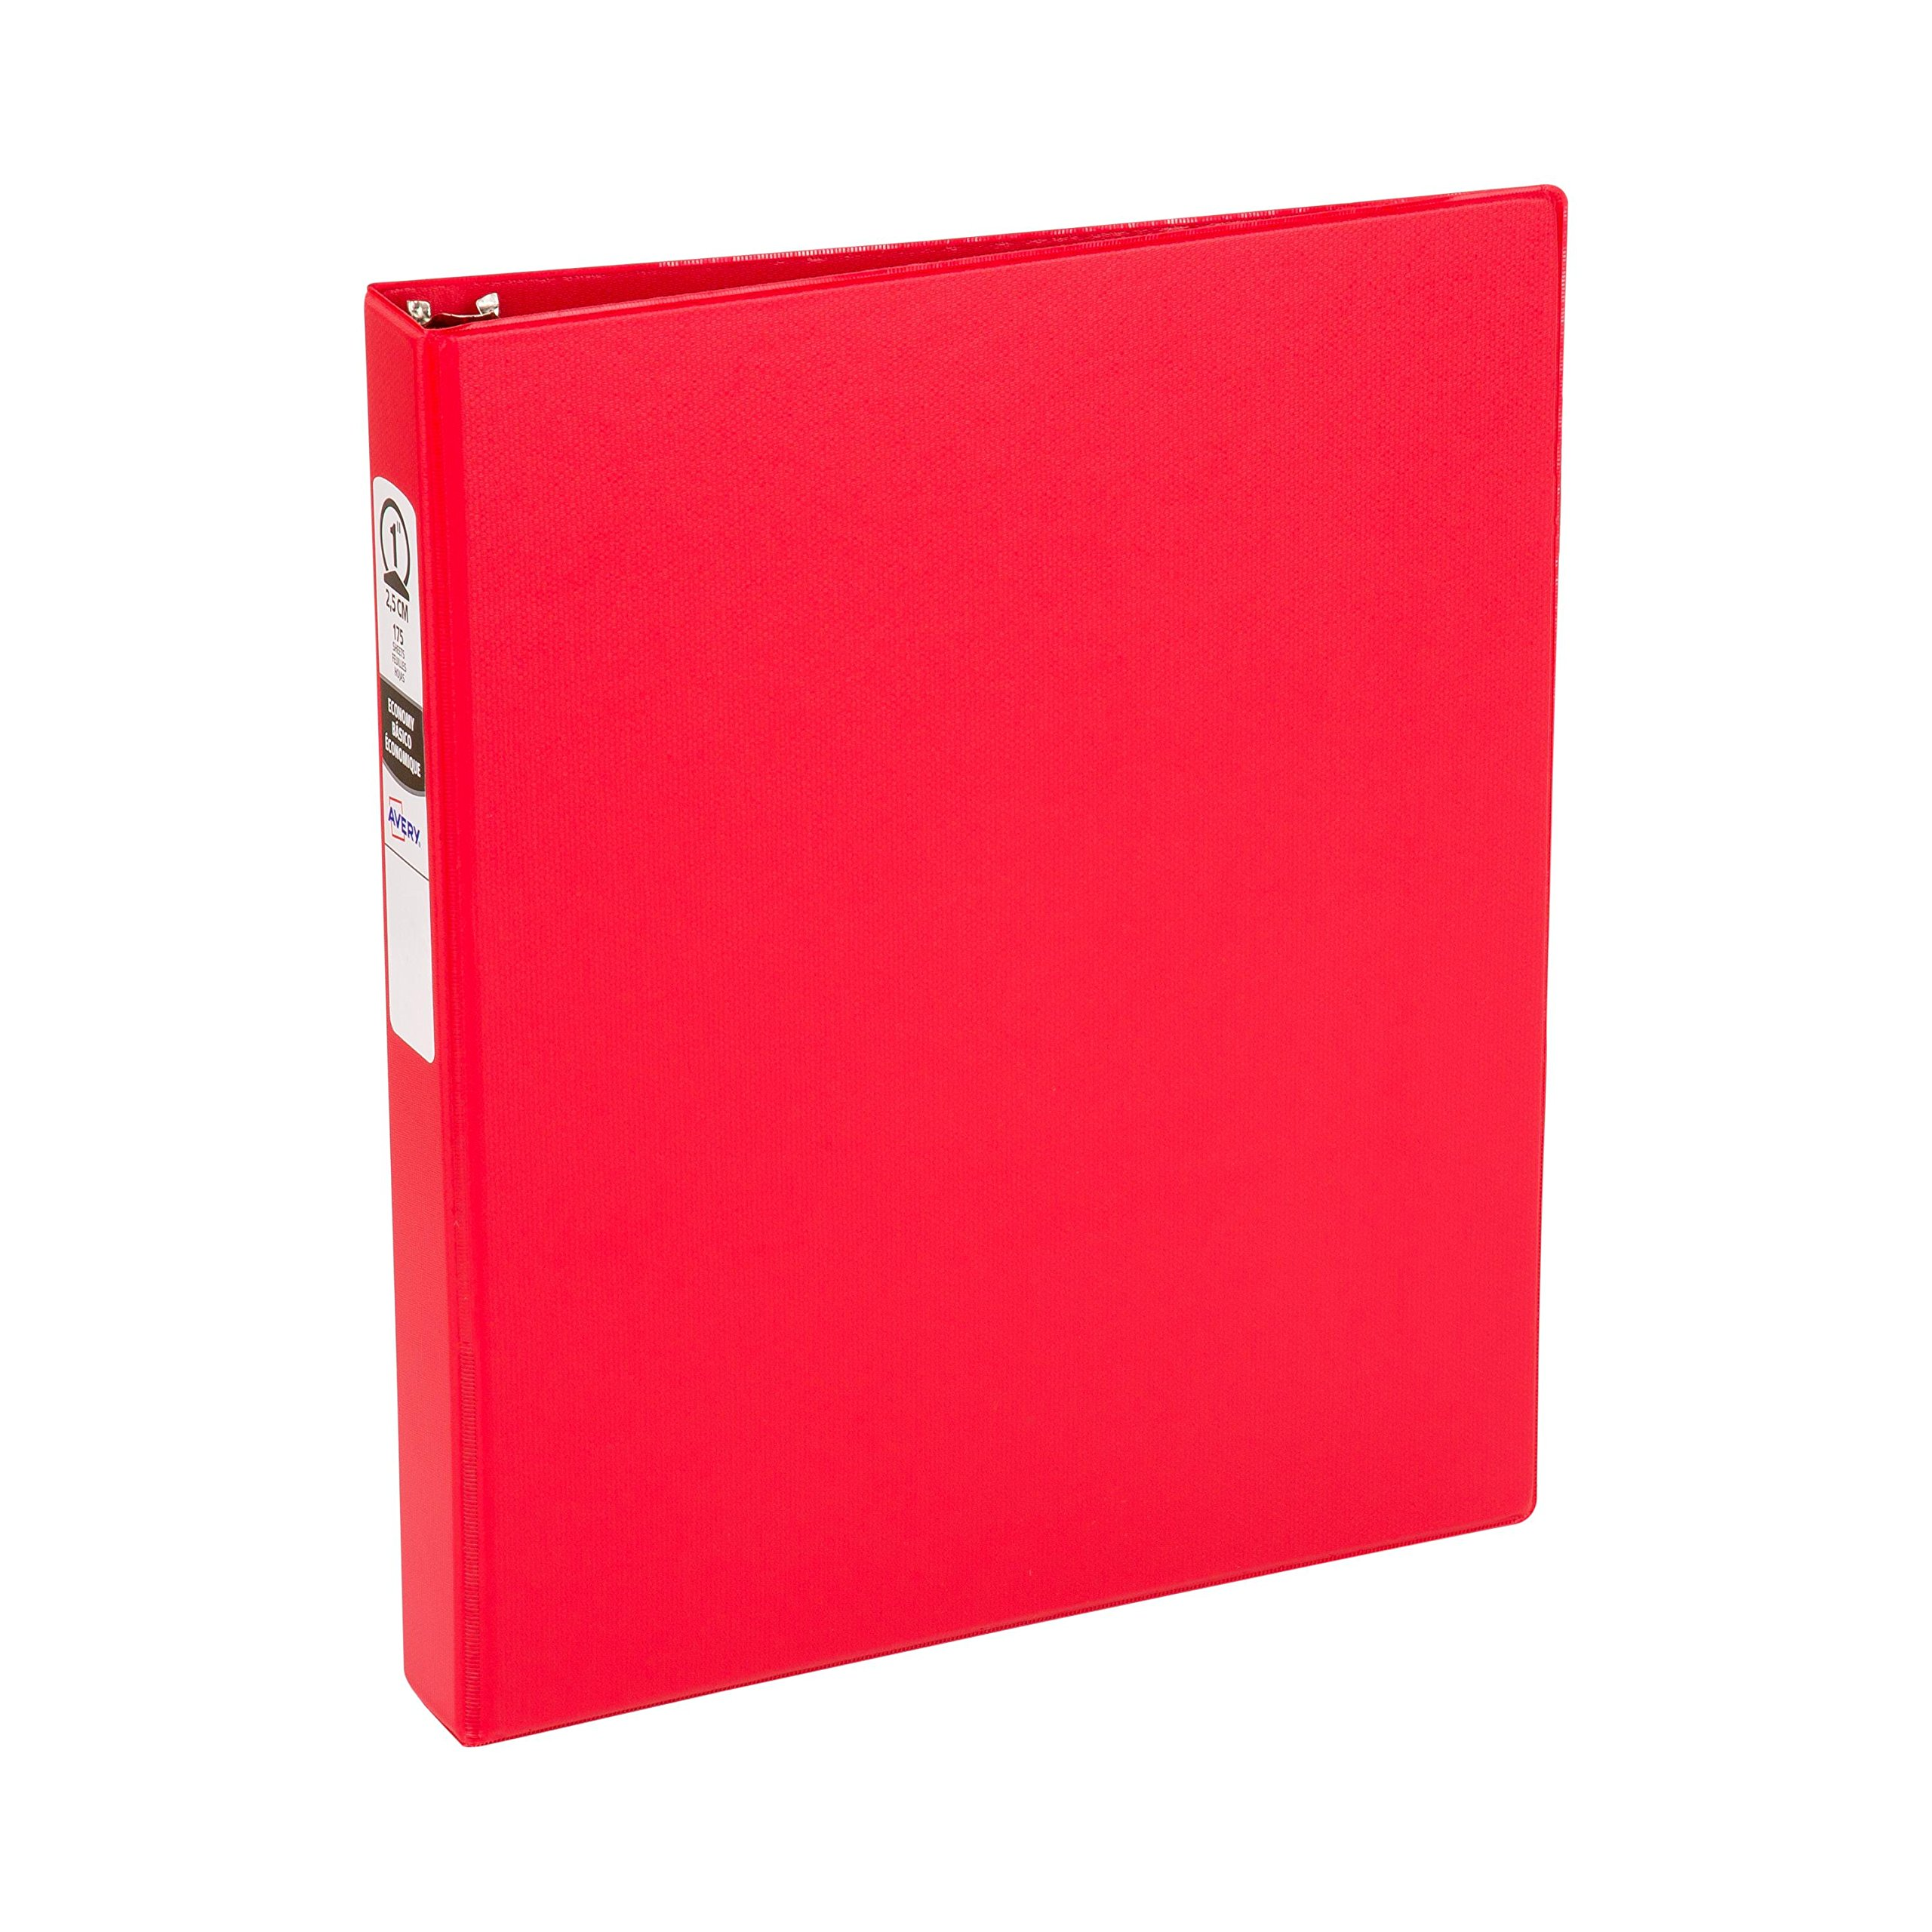 Avery Economy Binder with 1'' Round Ring, Red, Case Pack of 12 (3310)